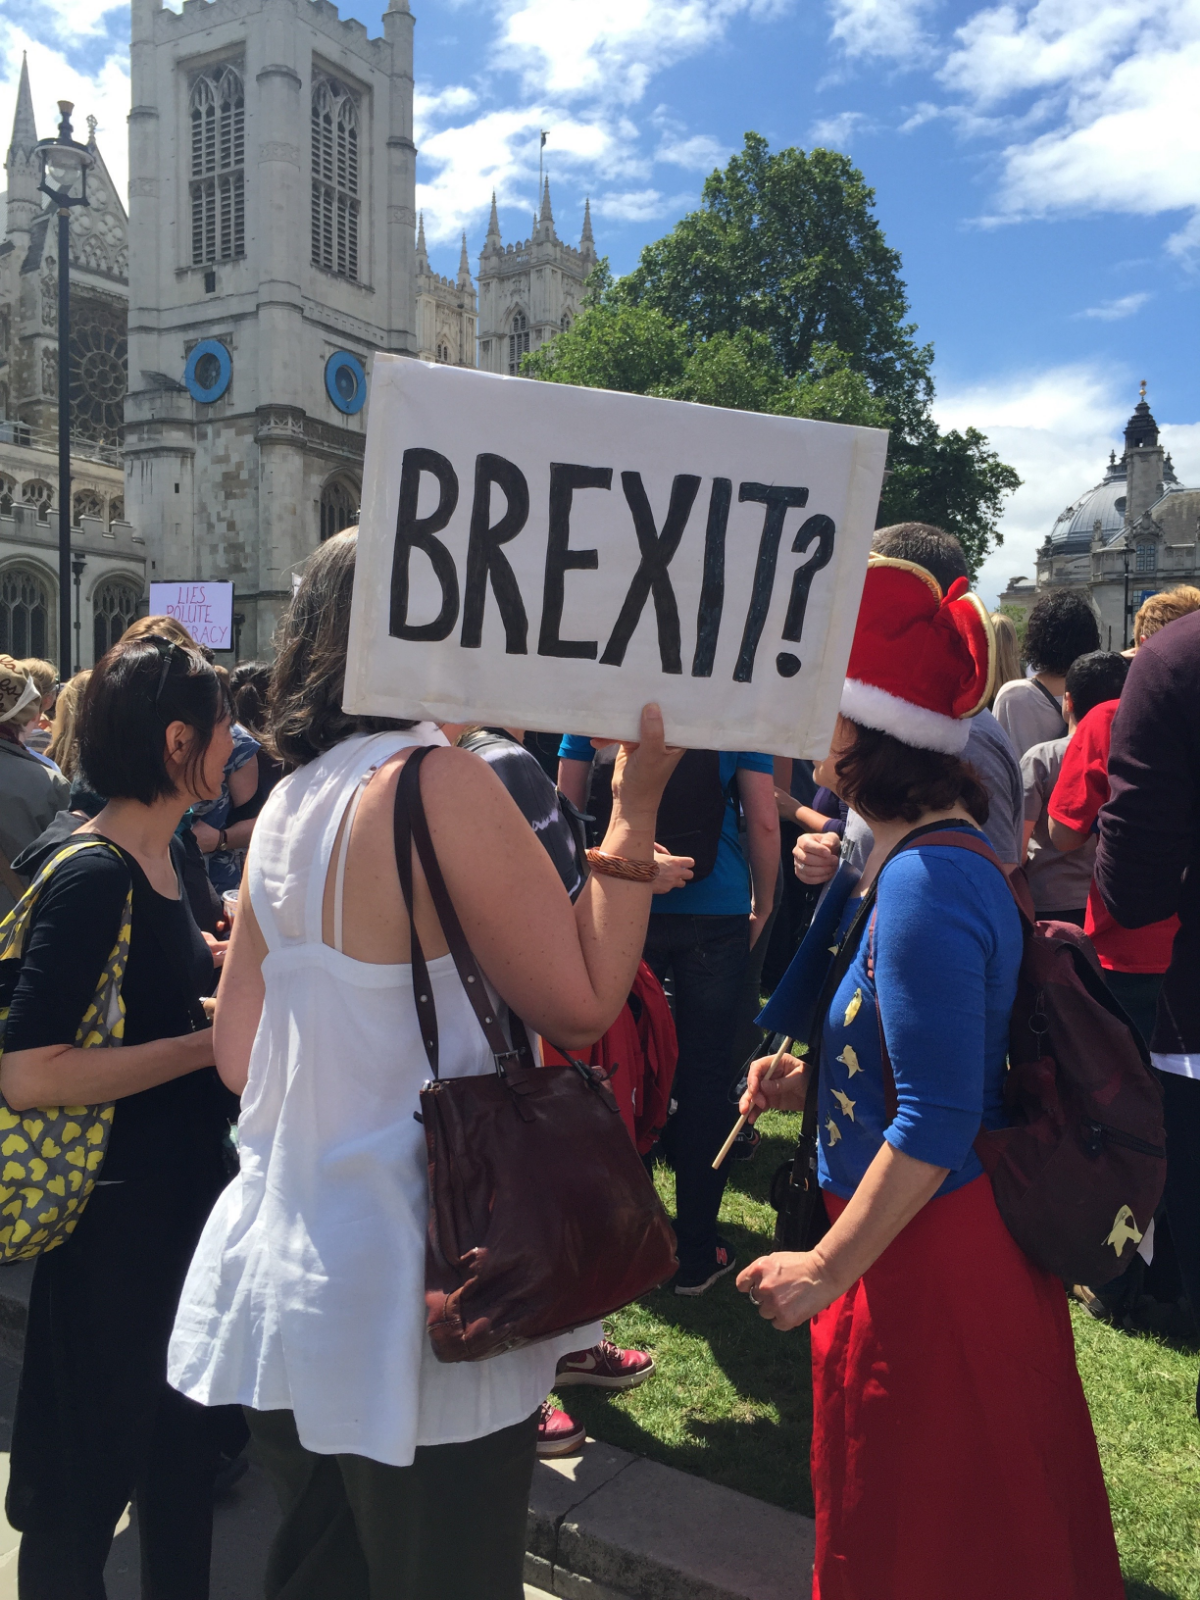 Protesting the UK referendum at The March for Europe.